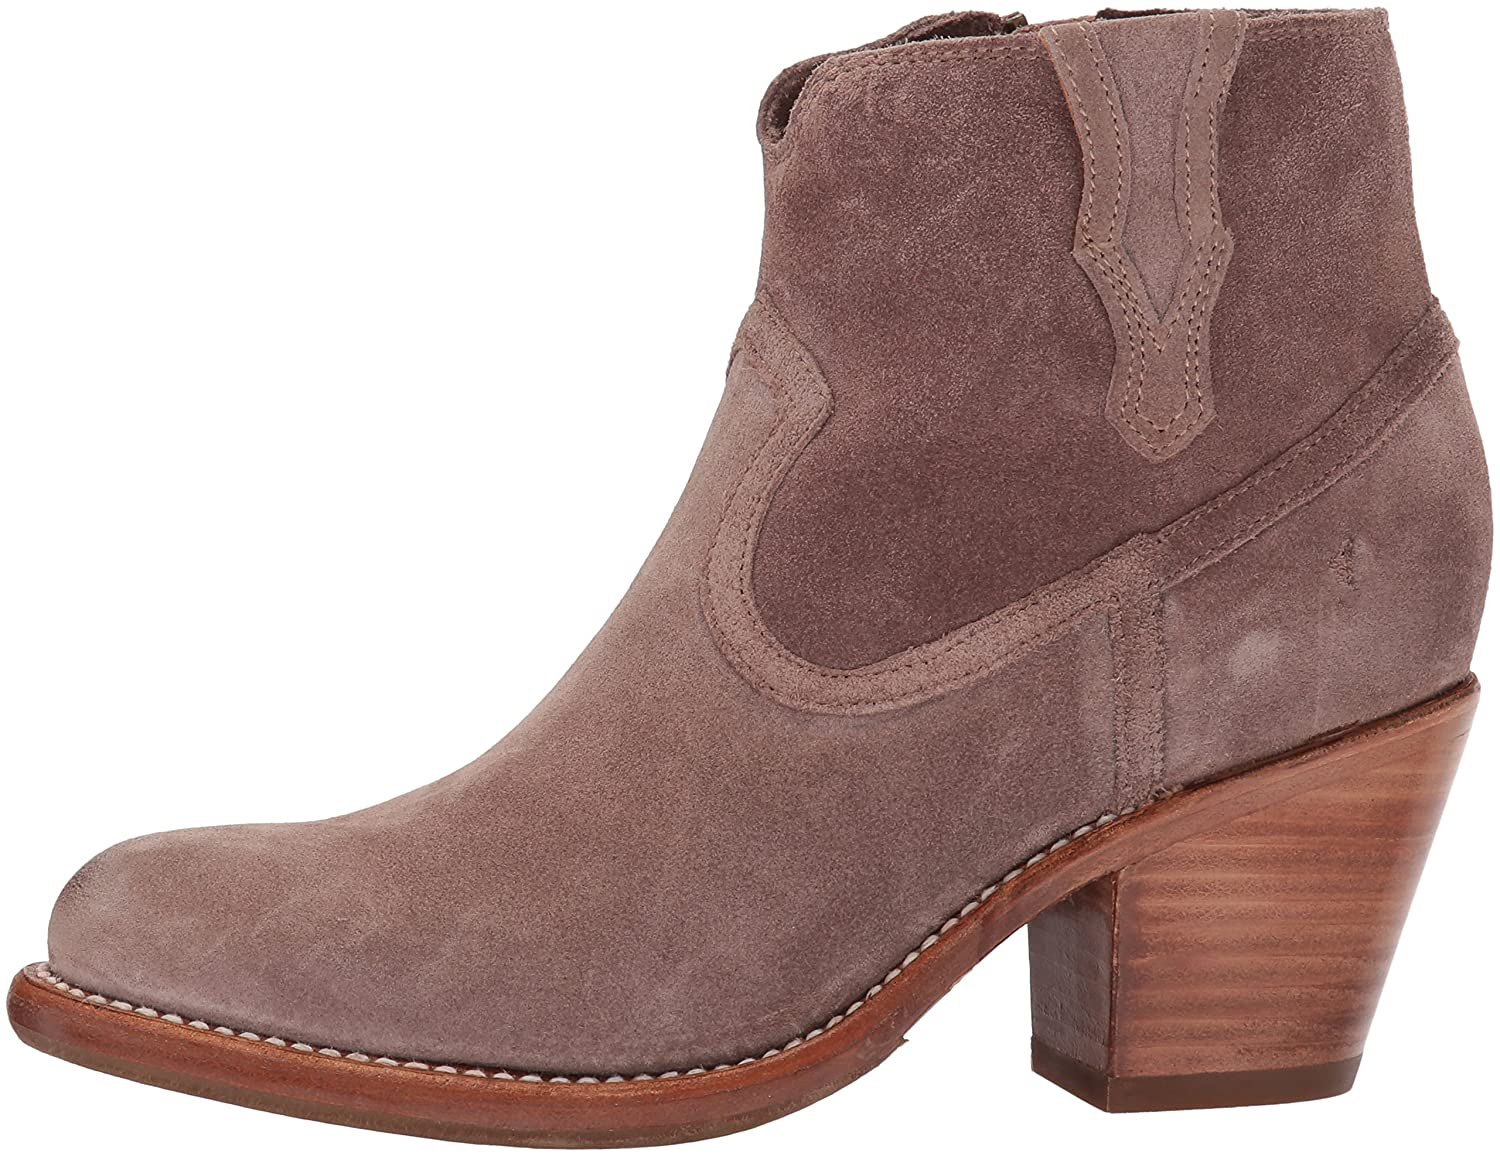 FRYE Women's Lillian Western Bootie Boot B01MU3S0WE Soft 7 B(M) US|Dusty Rose Soft B01MU3S0WE Oiled Suede 731304